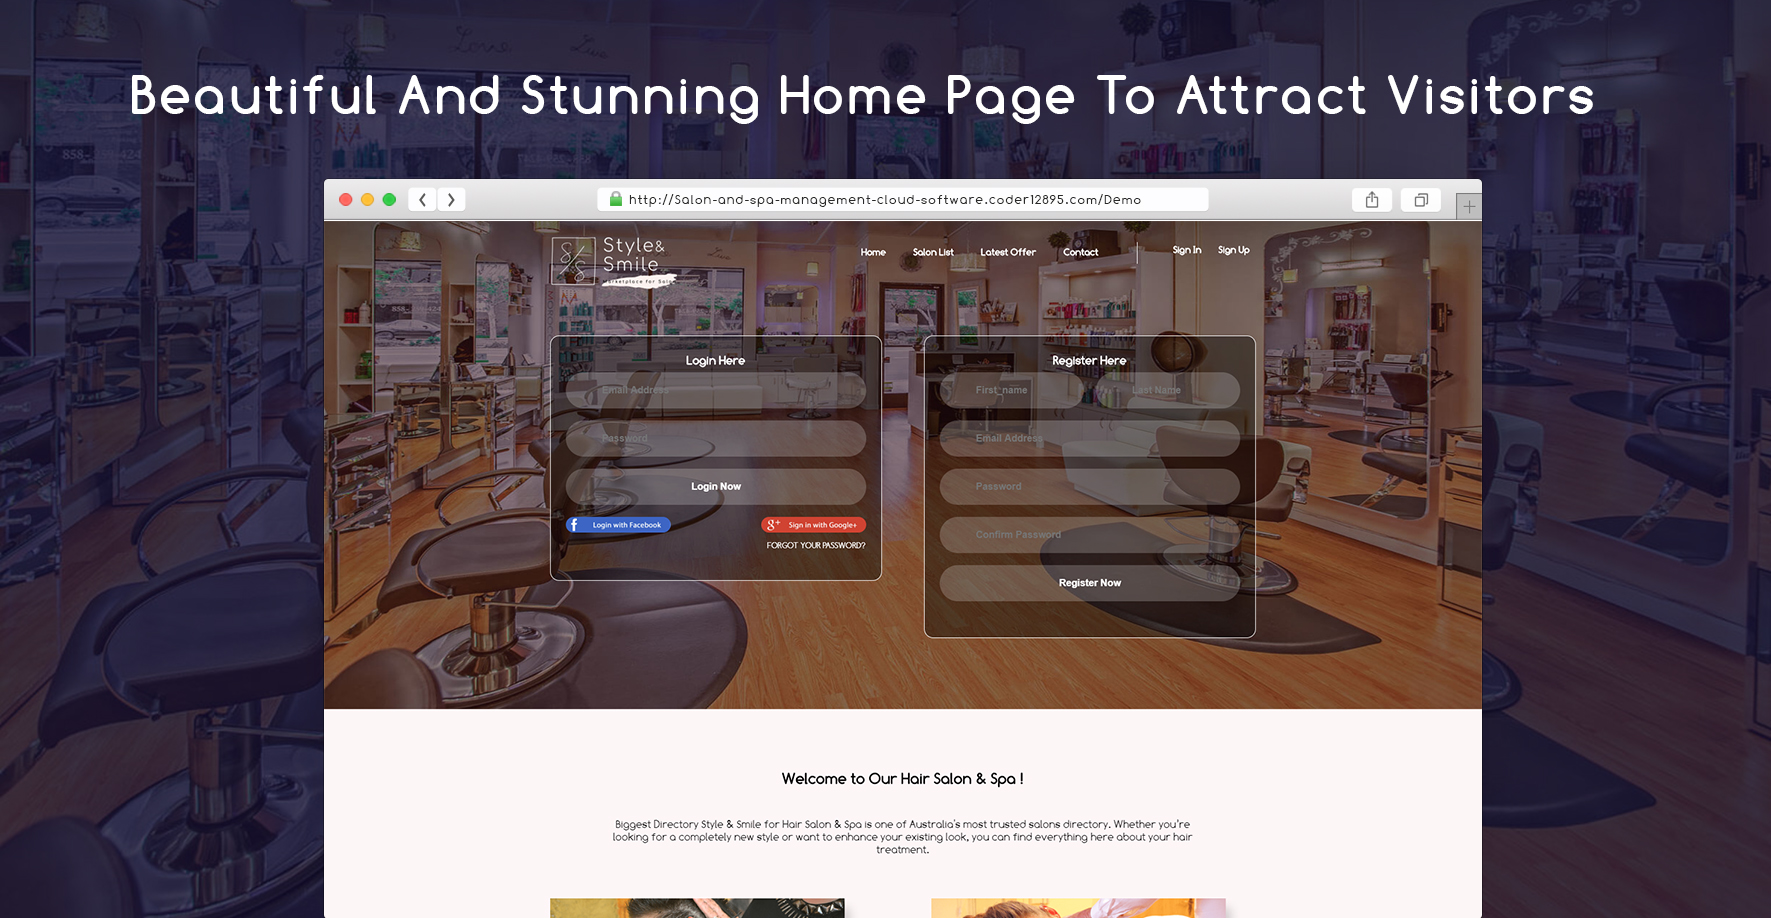 Beautiful_and_stunning_home_page_for_spa_and_salon_business